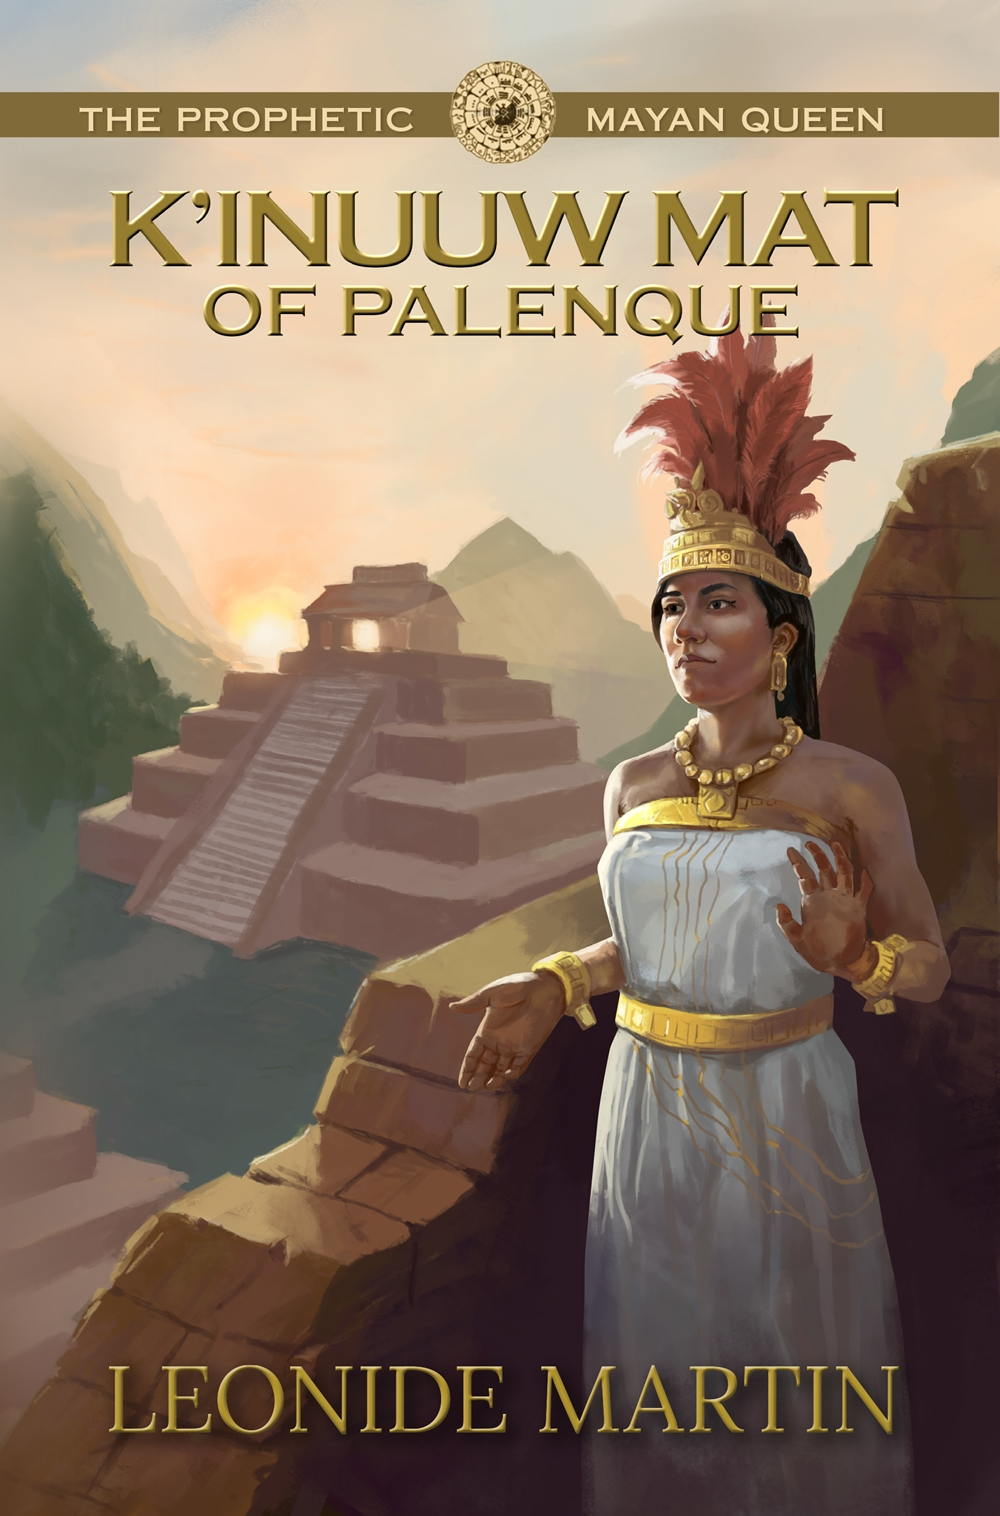 The Prophetic Mayan Queen: K'inuuw Mat of Palenque